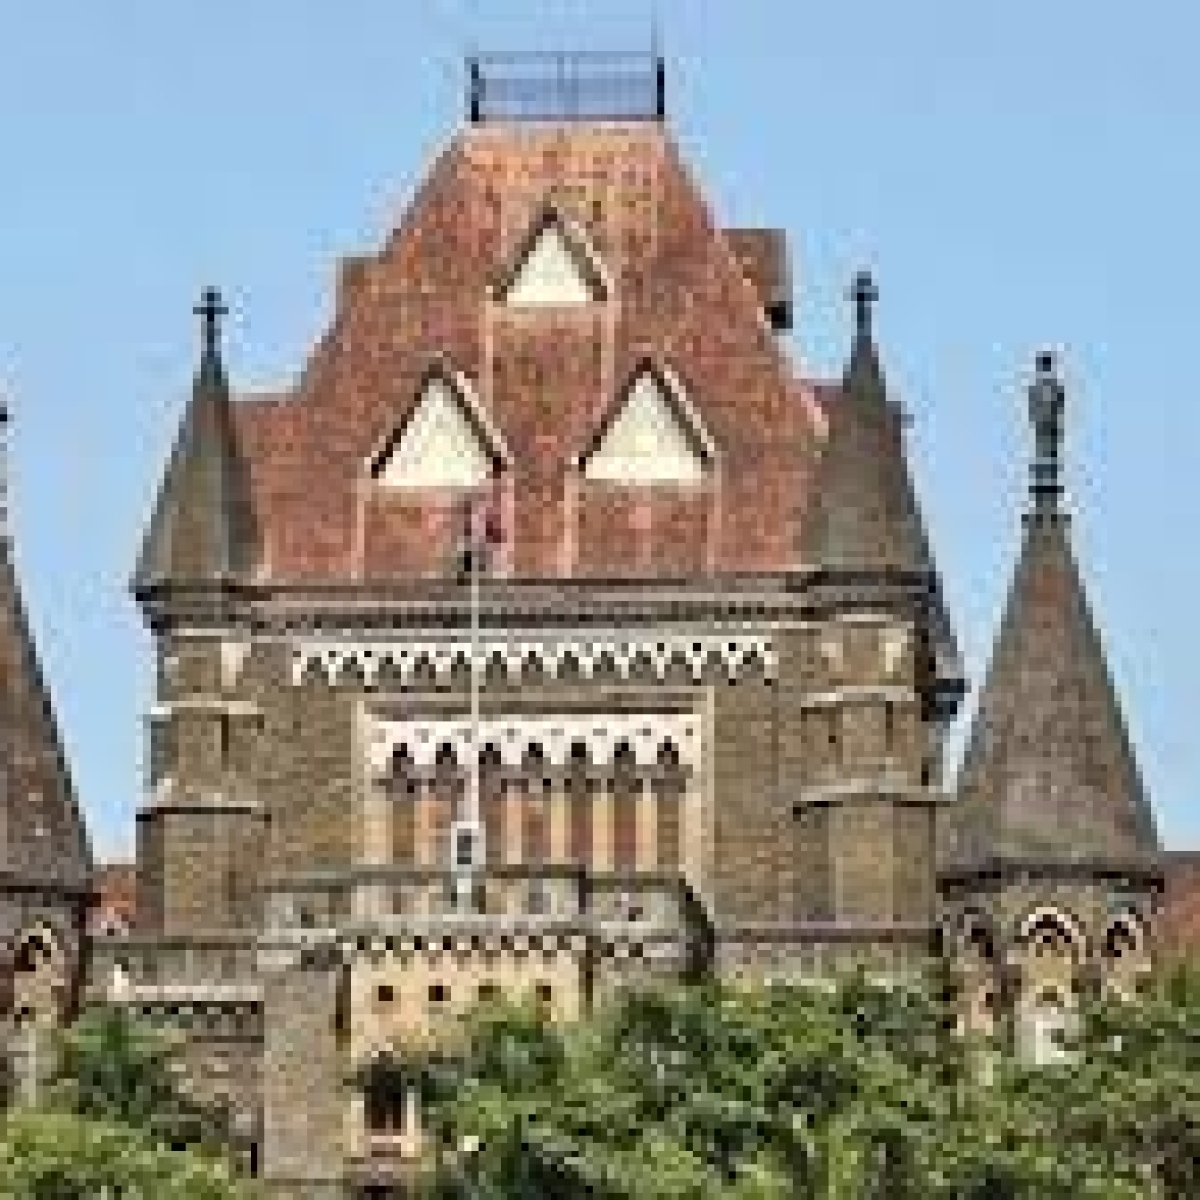 BMC has lived up to expectations of Mumbaikars and pregnant women, says HC